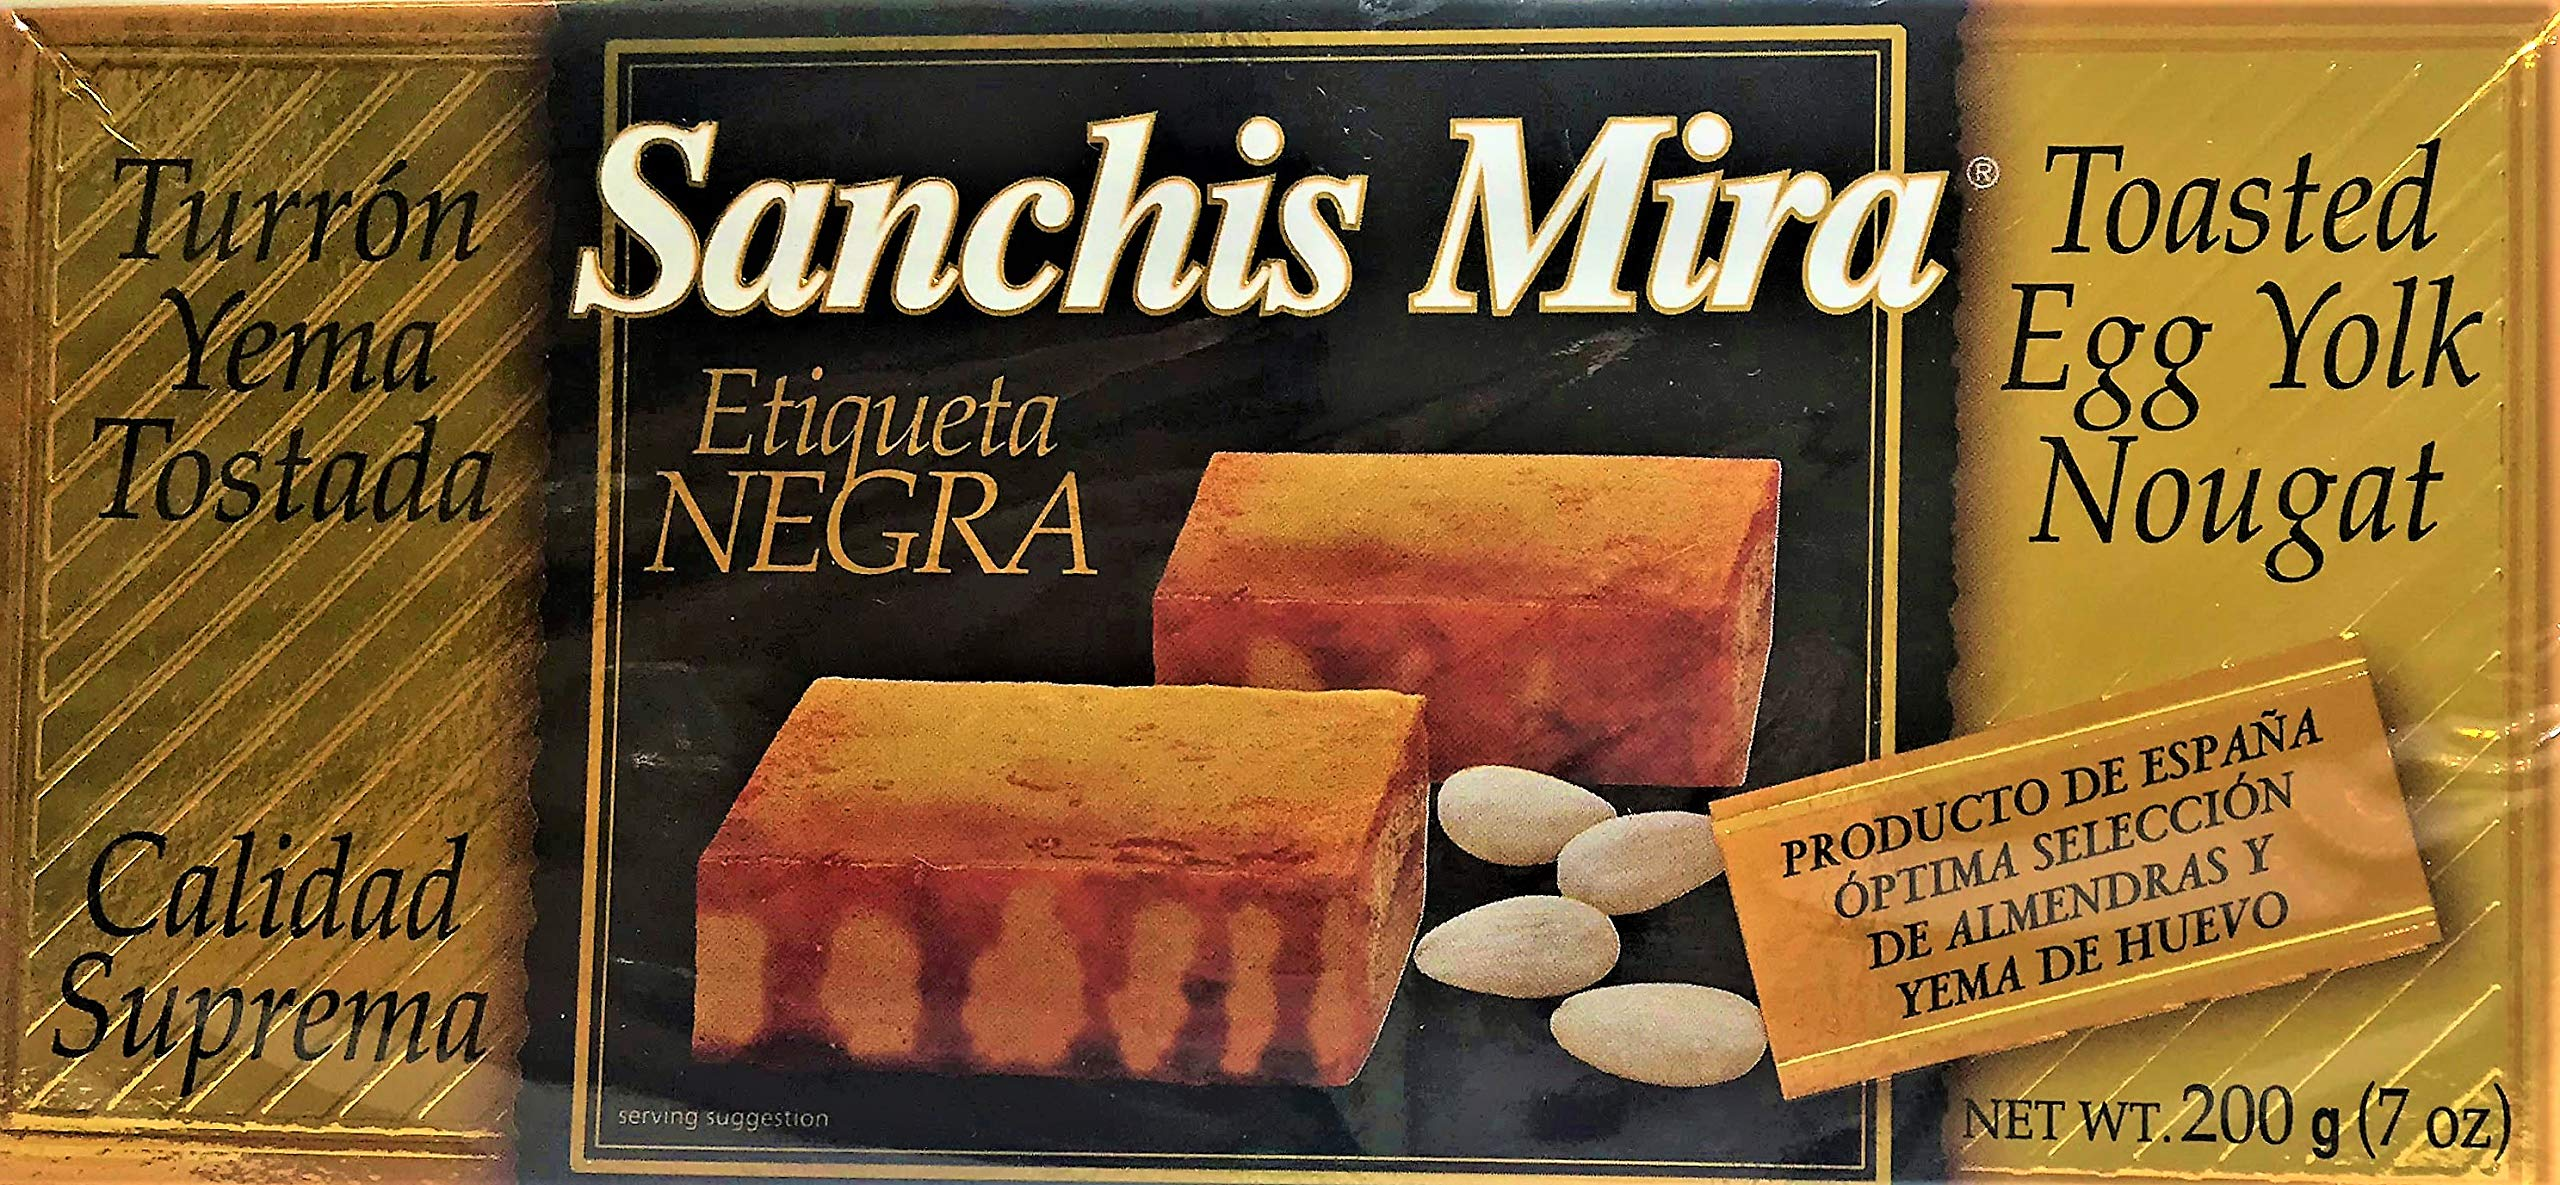 Sanchis Mira Turron de Yema Tostada Just arrived from Spain 200 grs. (7oz.